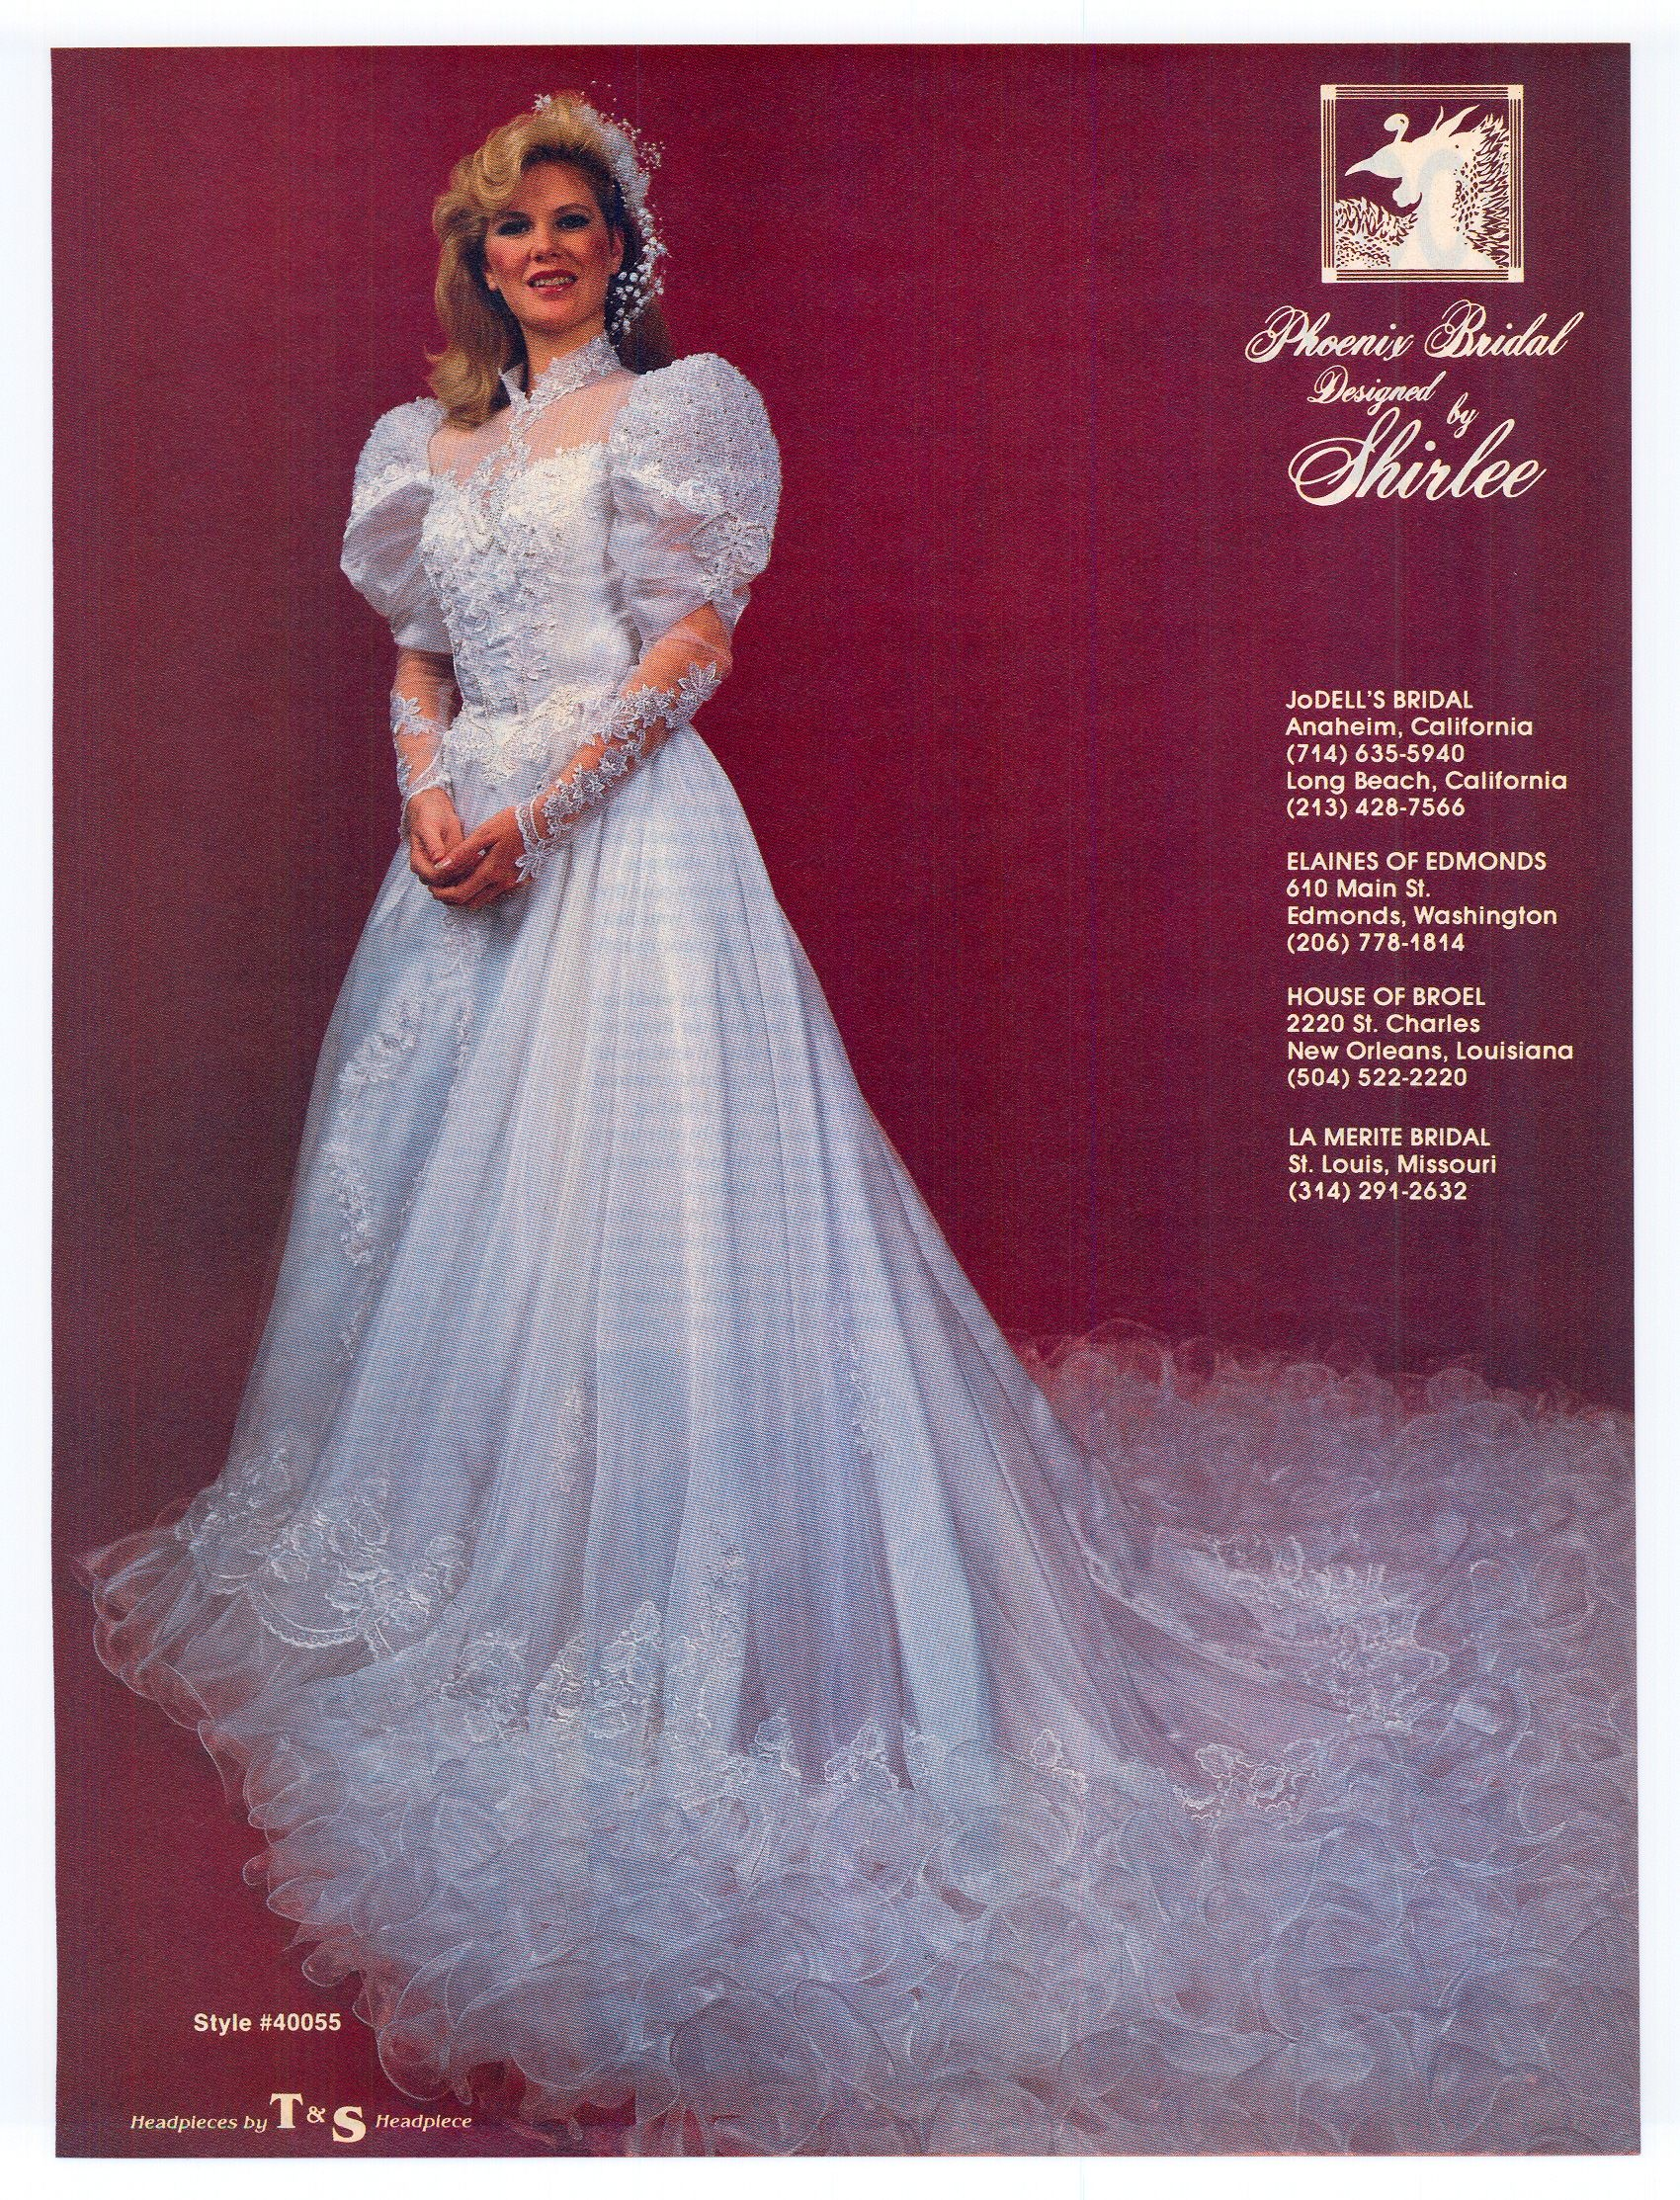 1985 Aug Sept Brides 30 Years Later And I Would Wear This Gown Still Someone Else Wrot Detachable Train Wedding Dress 1980s Wedding Dress Wedding Dresses 80s [ 2226 x 1700 Pixel ]